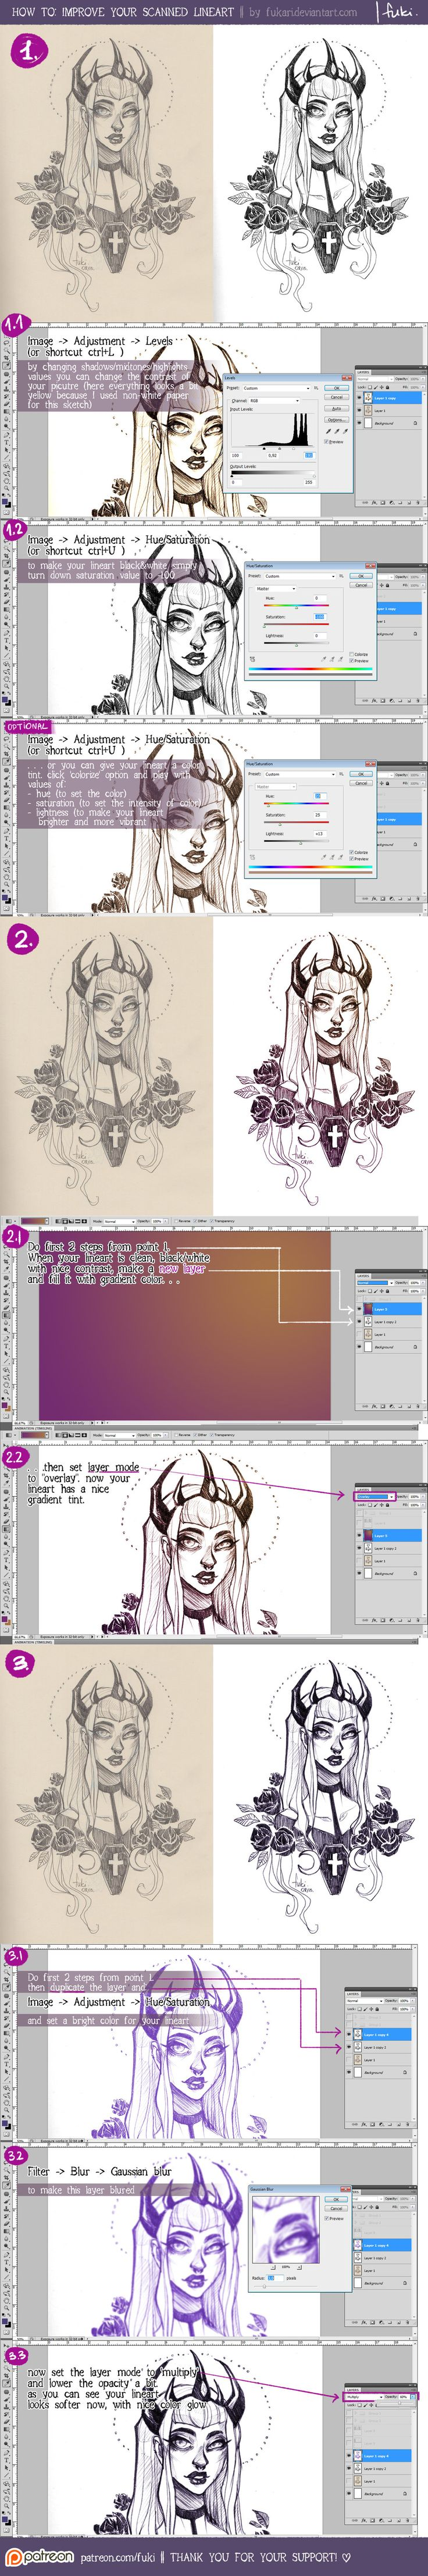 editing your scans by Fukari on DeviantArt